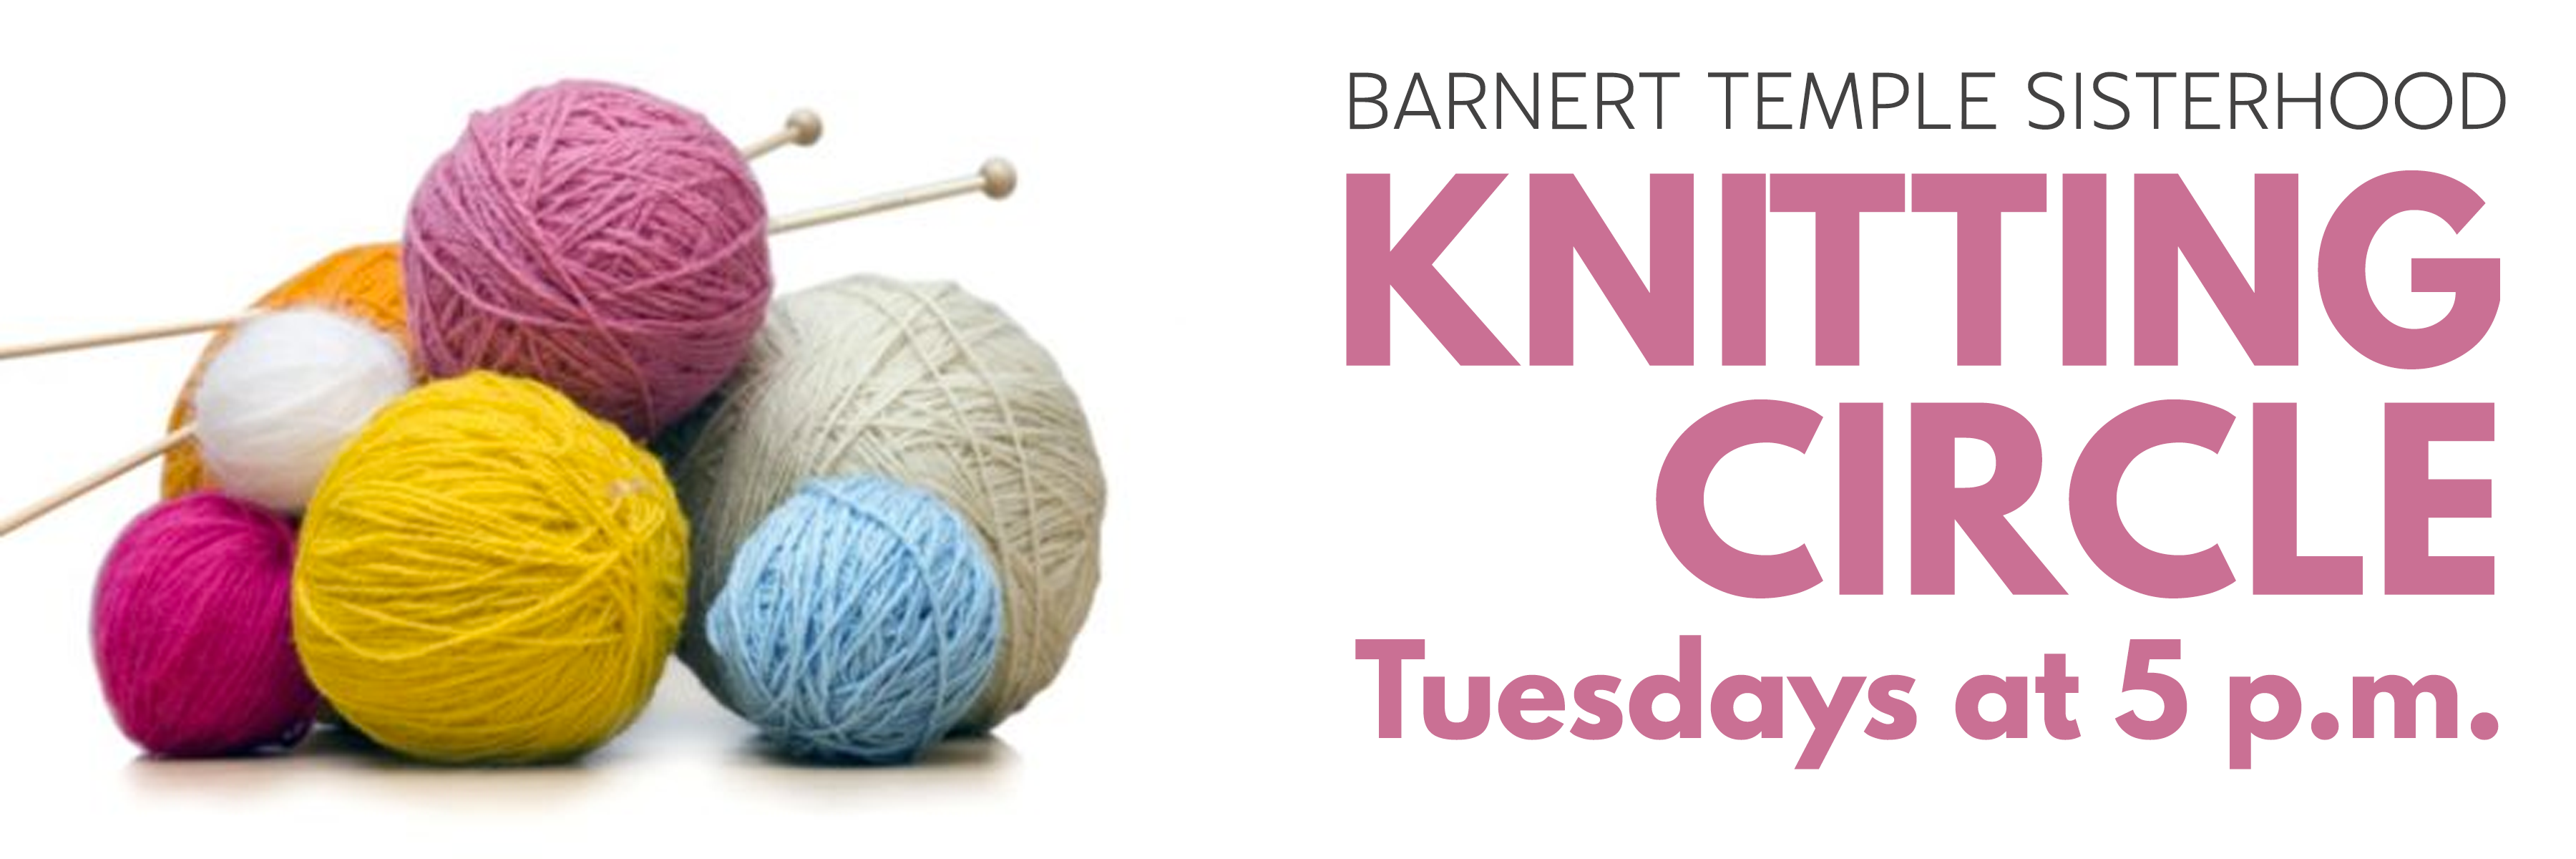 "<a href=""http://www.barnerttemple.org/virtual-community""